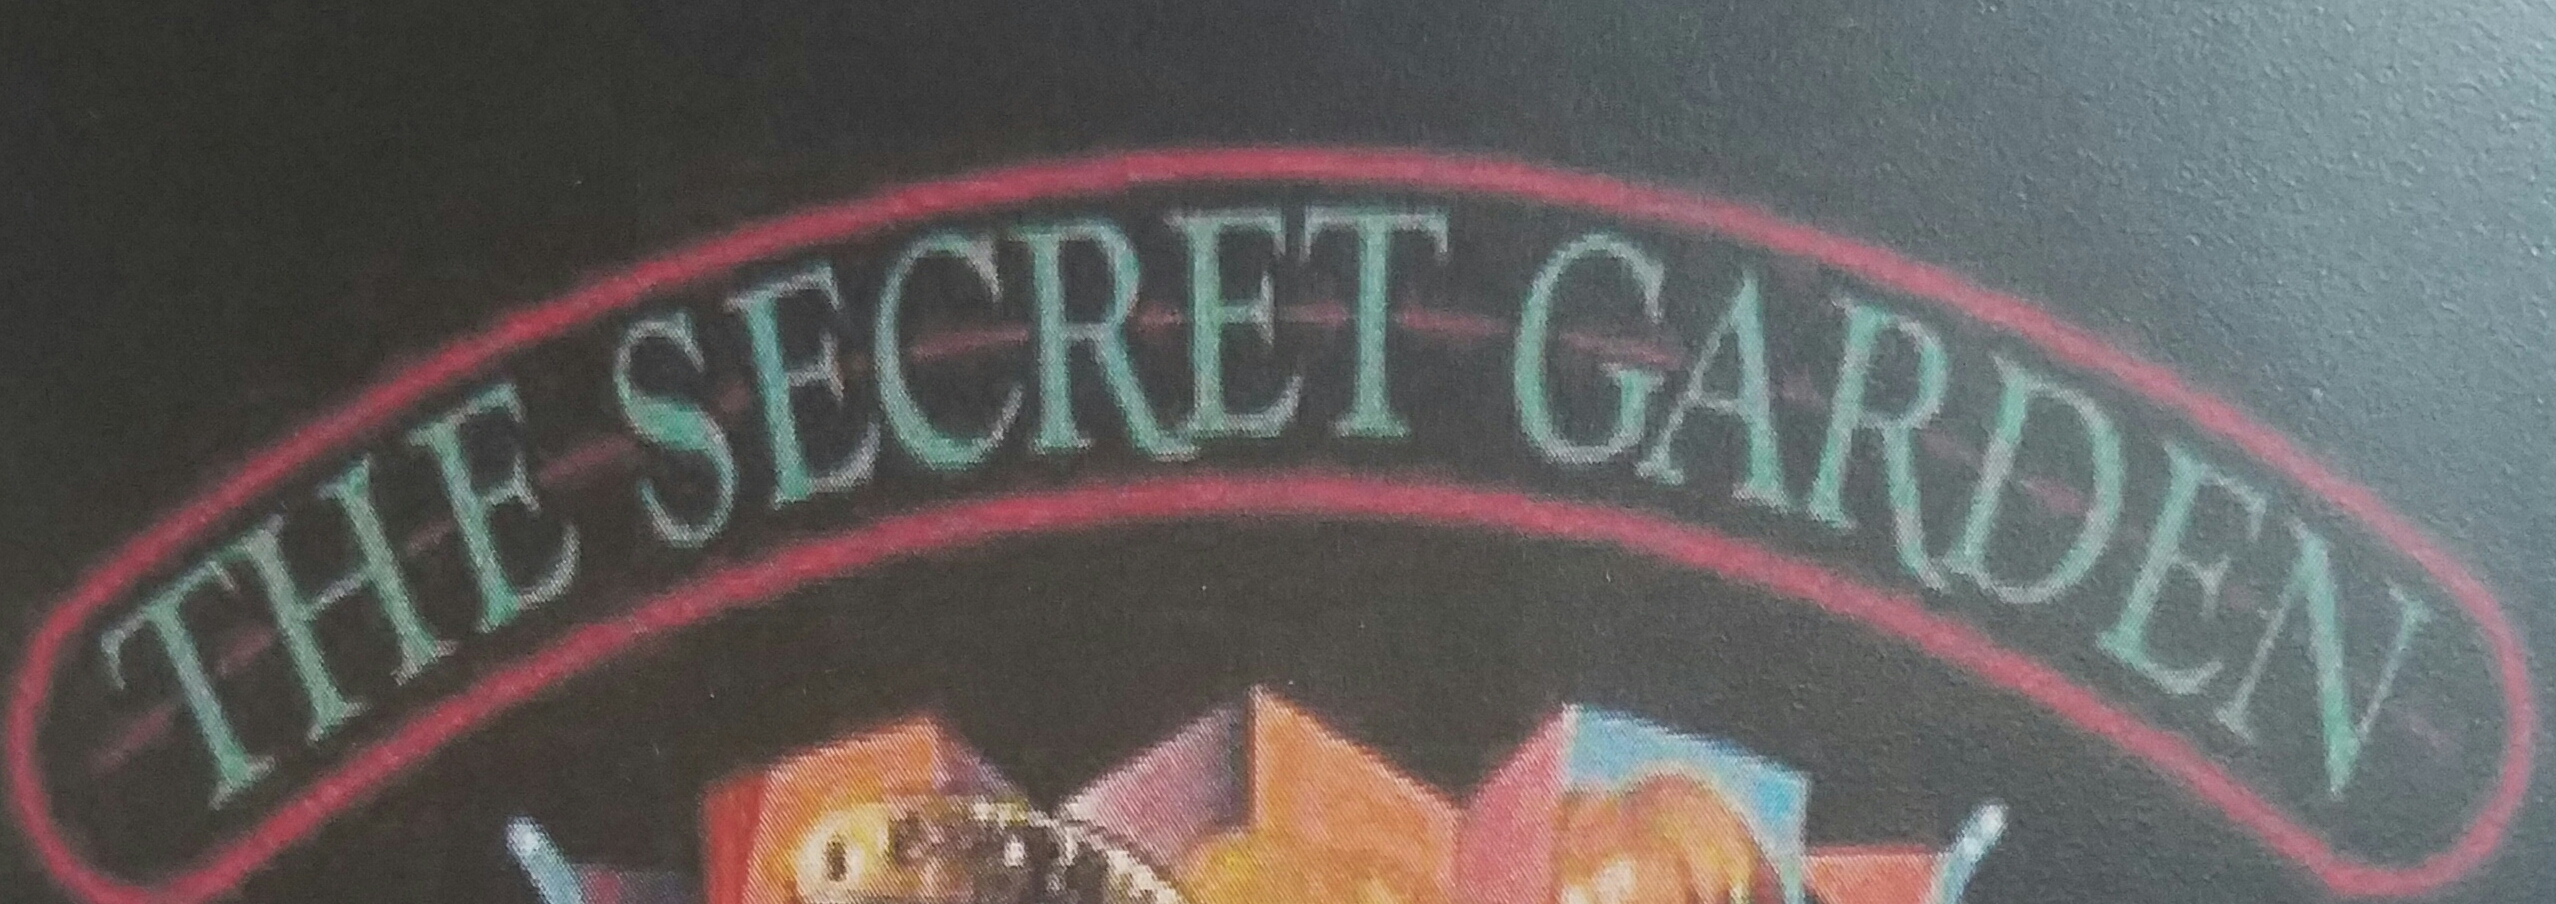 Fall Semester Kick Off Production Of The Secret Garden Musical By Lucy Simon Presented By